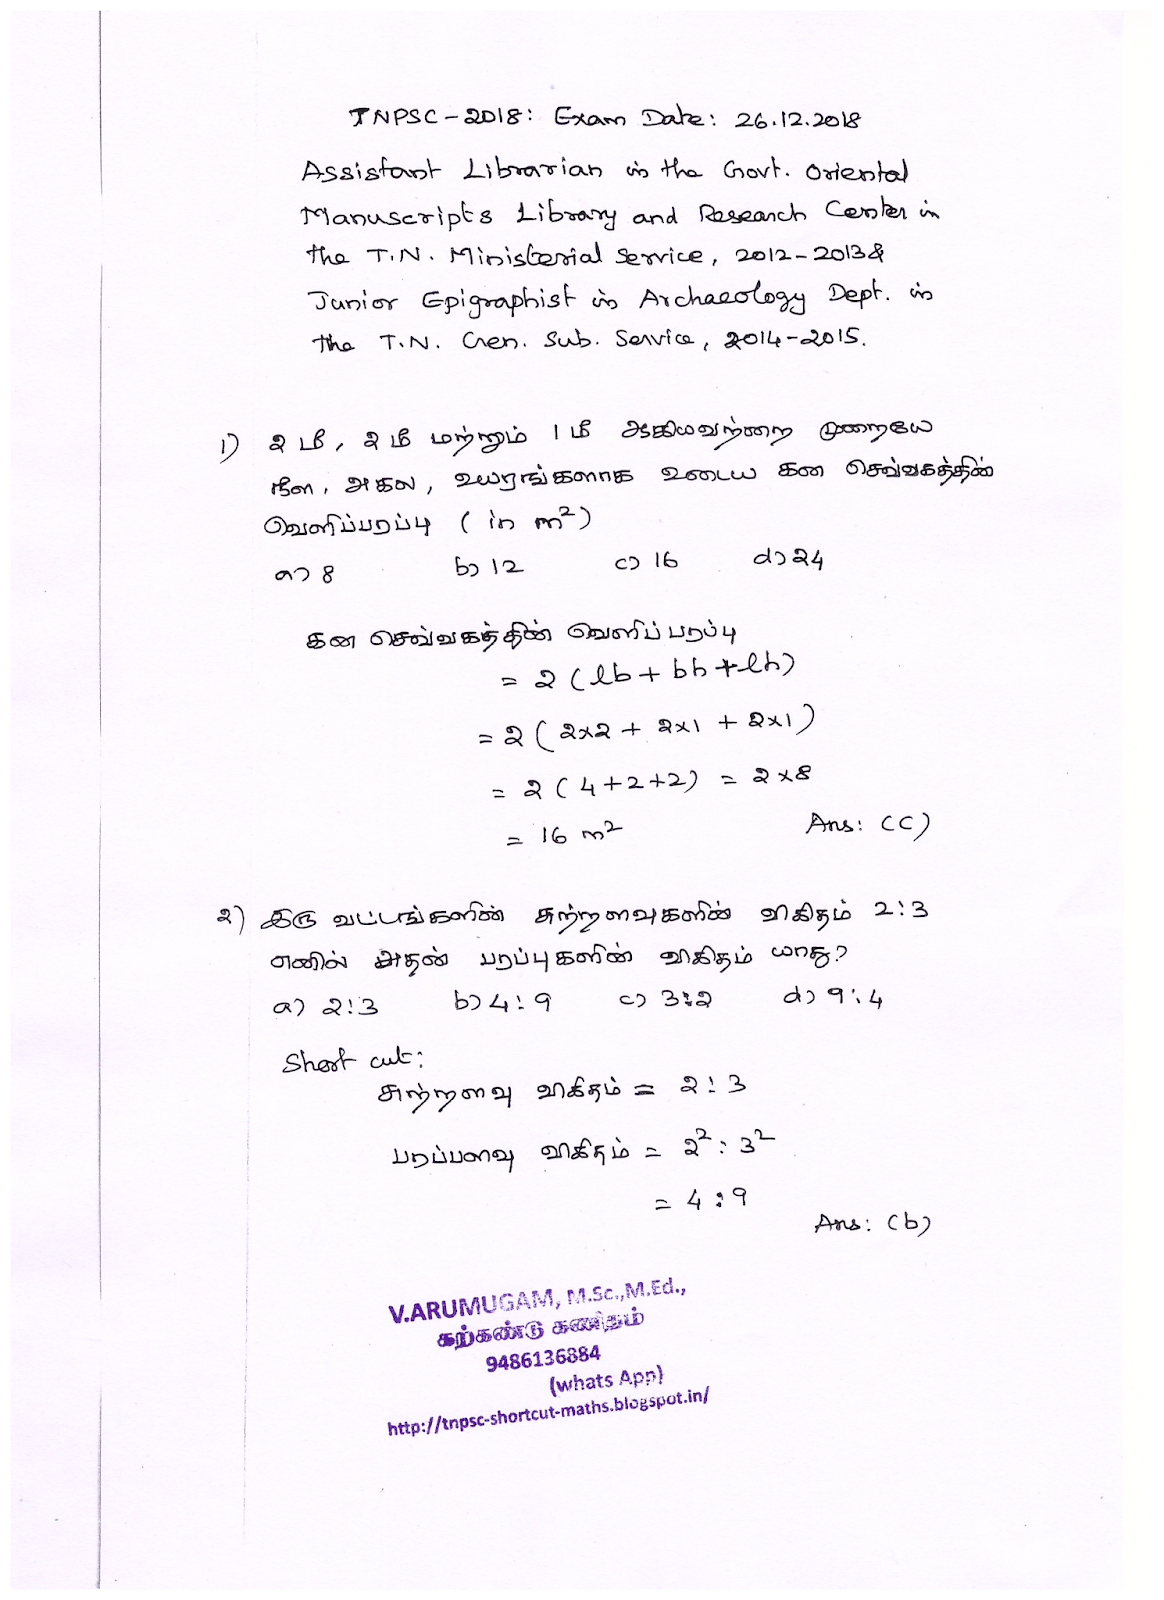 TNPSC – 2018 - Assistant Librarian in the Government Oriental Manuscripts Library and Research Centre & Junior Epigraphist in Archaeology Department EXAM - EXAM DATE: 26.12.2018